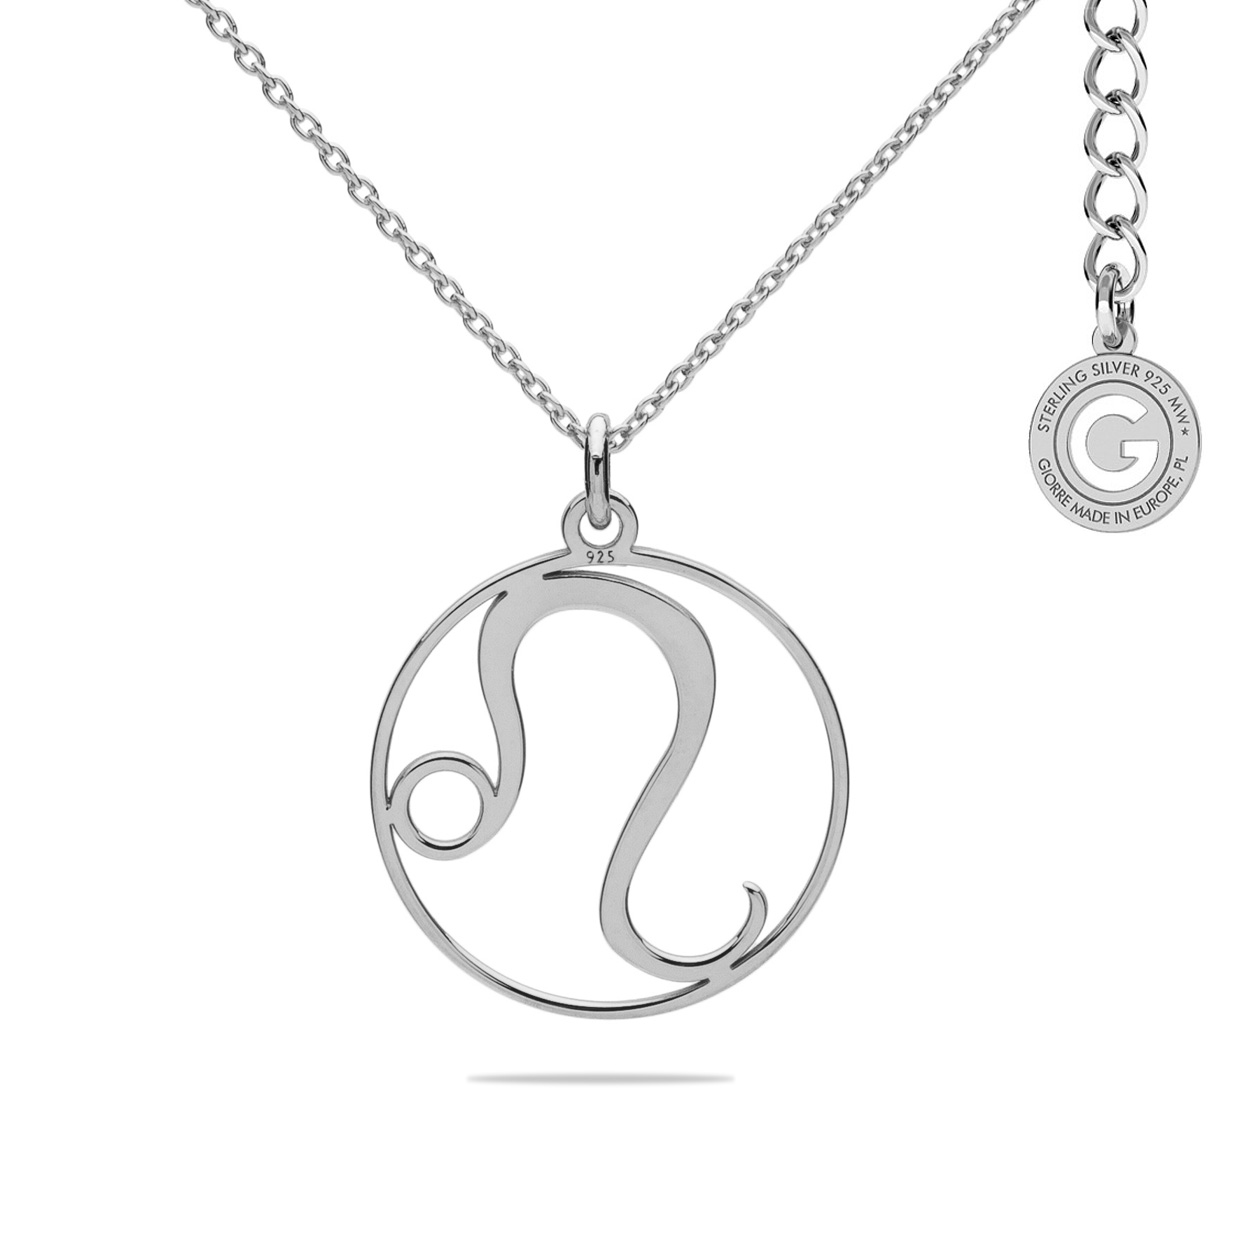 LION ZODIAC SIGN NECKLACE SILVER 925